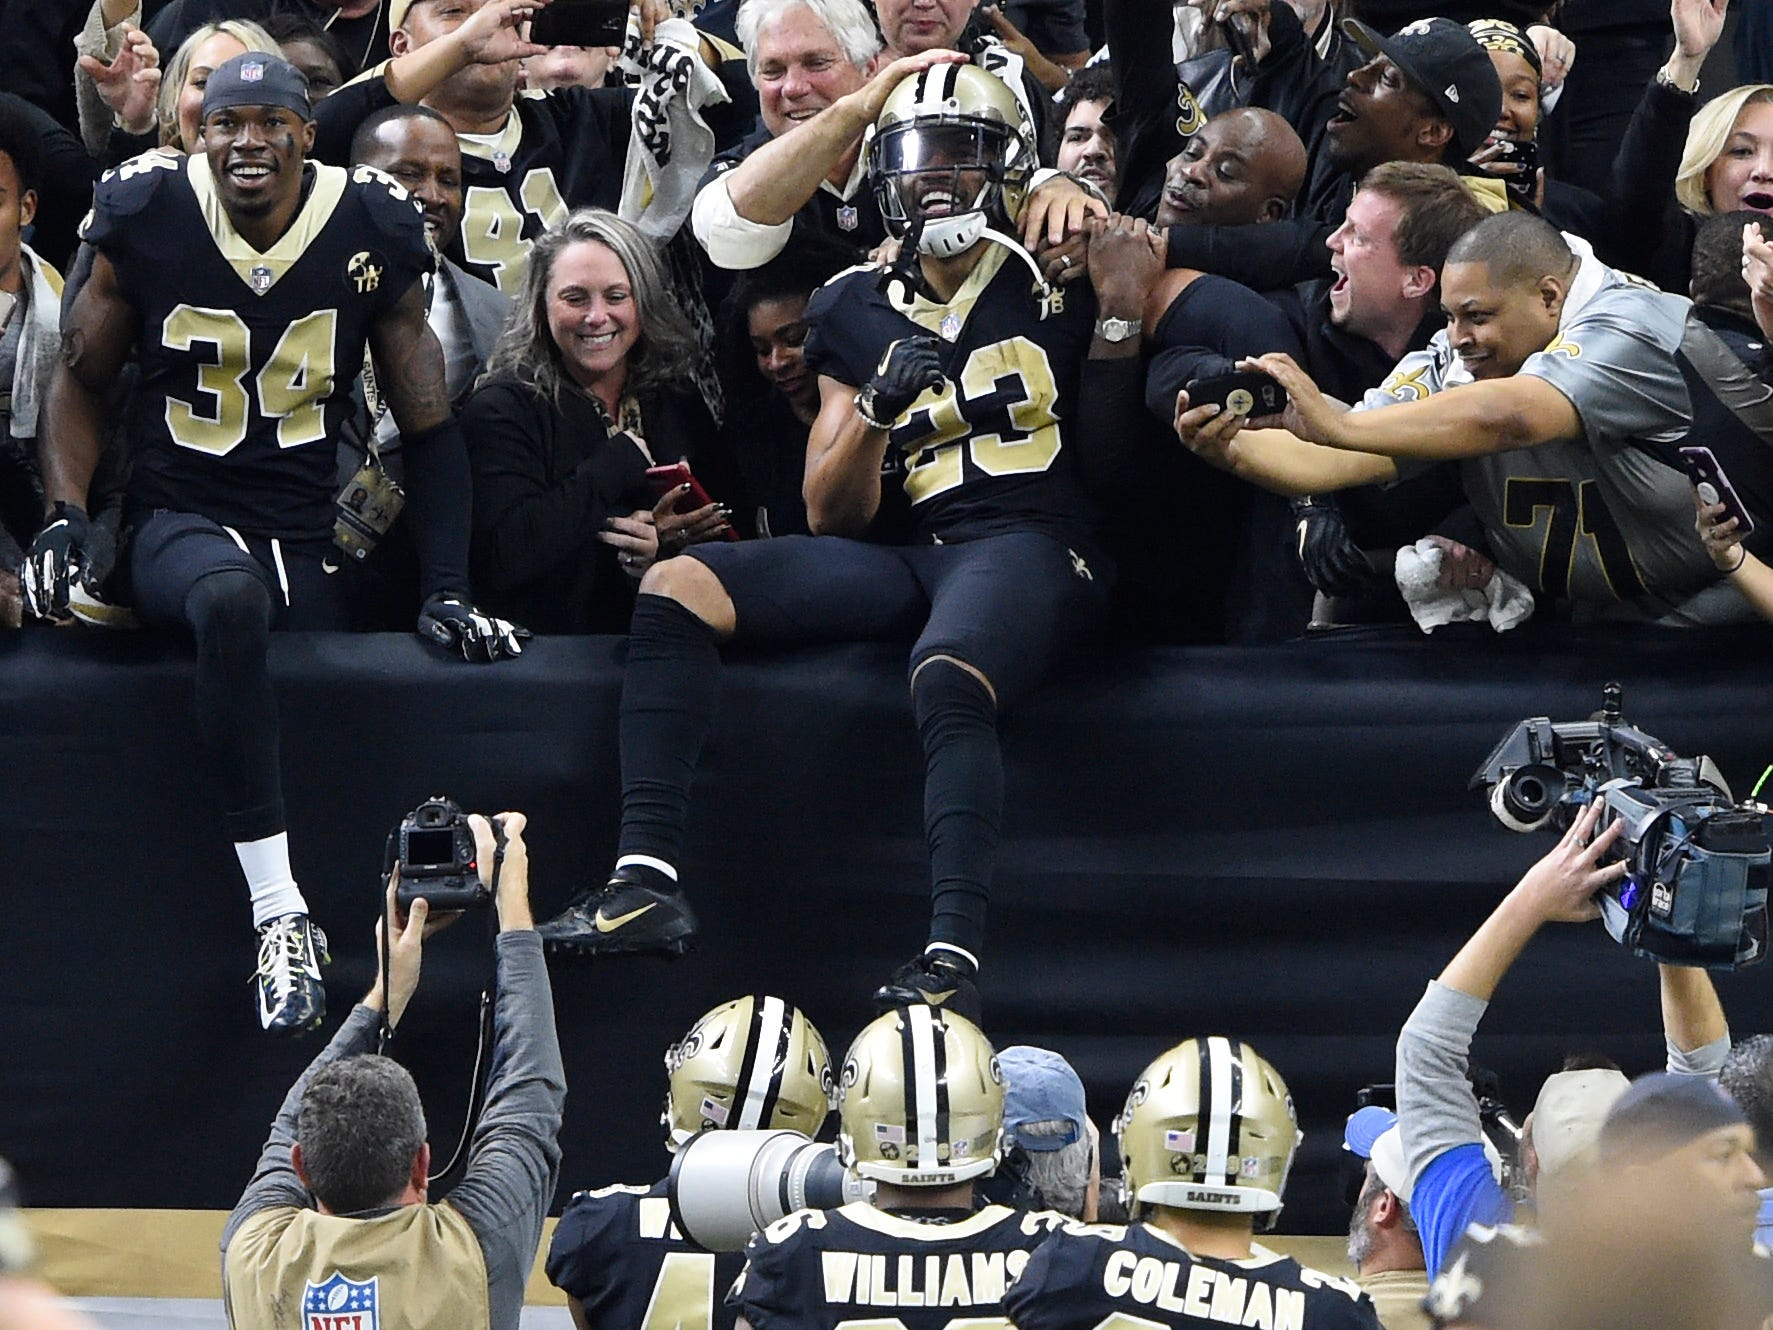 New Orleans Saints cornerback Marshon Lattimore (23) celebrates with fans after intercepting a pass against the Philadelphia Eagles during the fourth quarter of the NFC divisional playoff game at Mercedes-Benz Superdome.